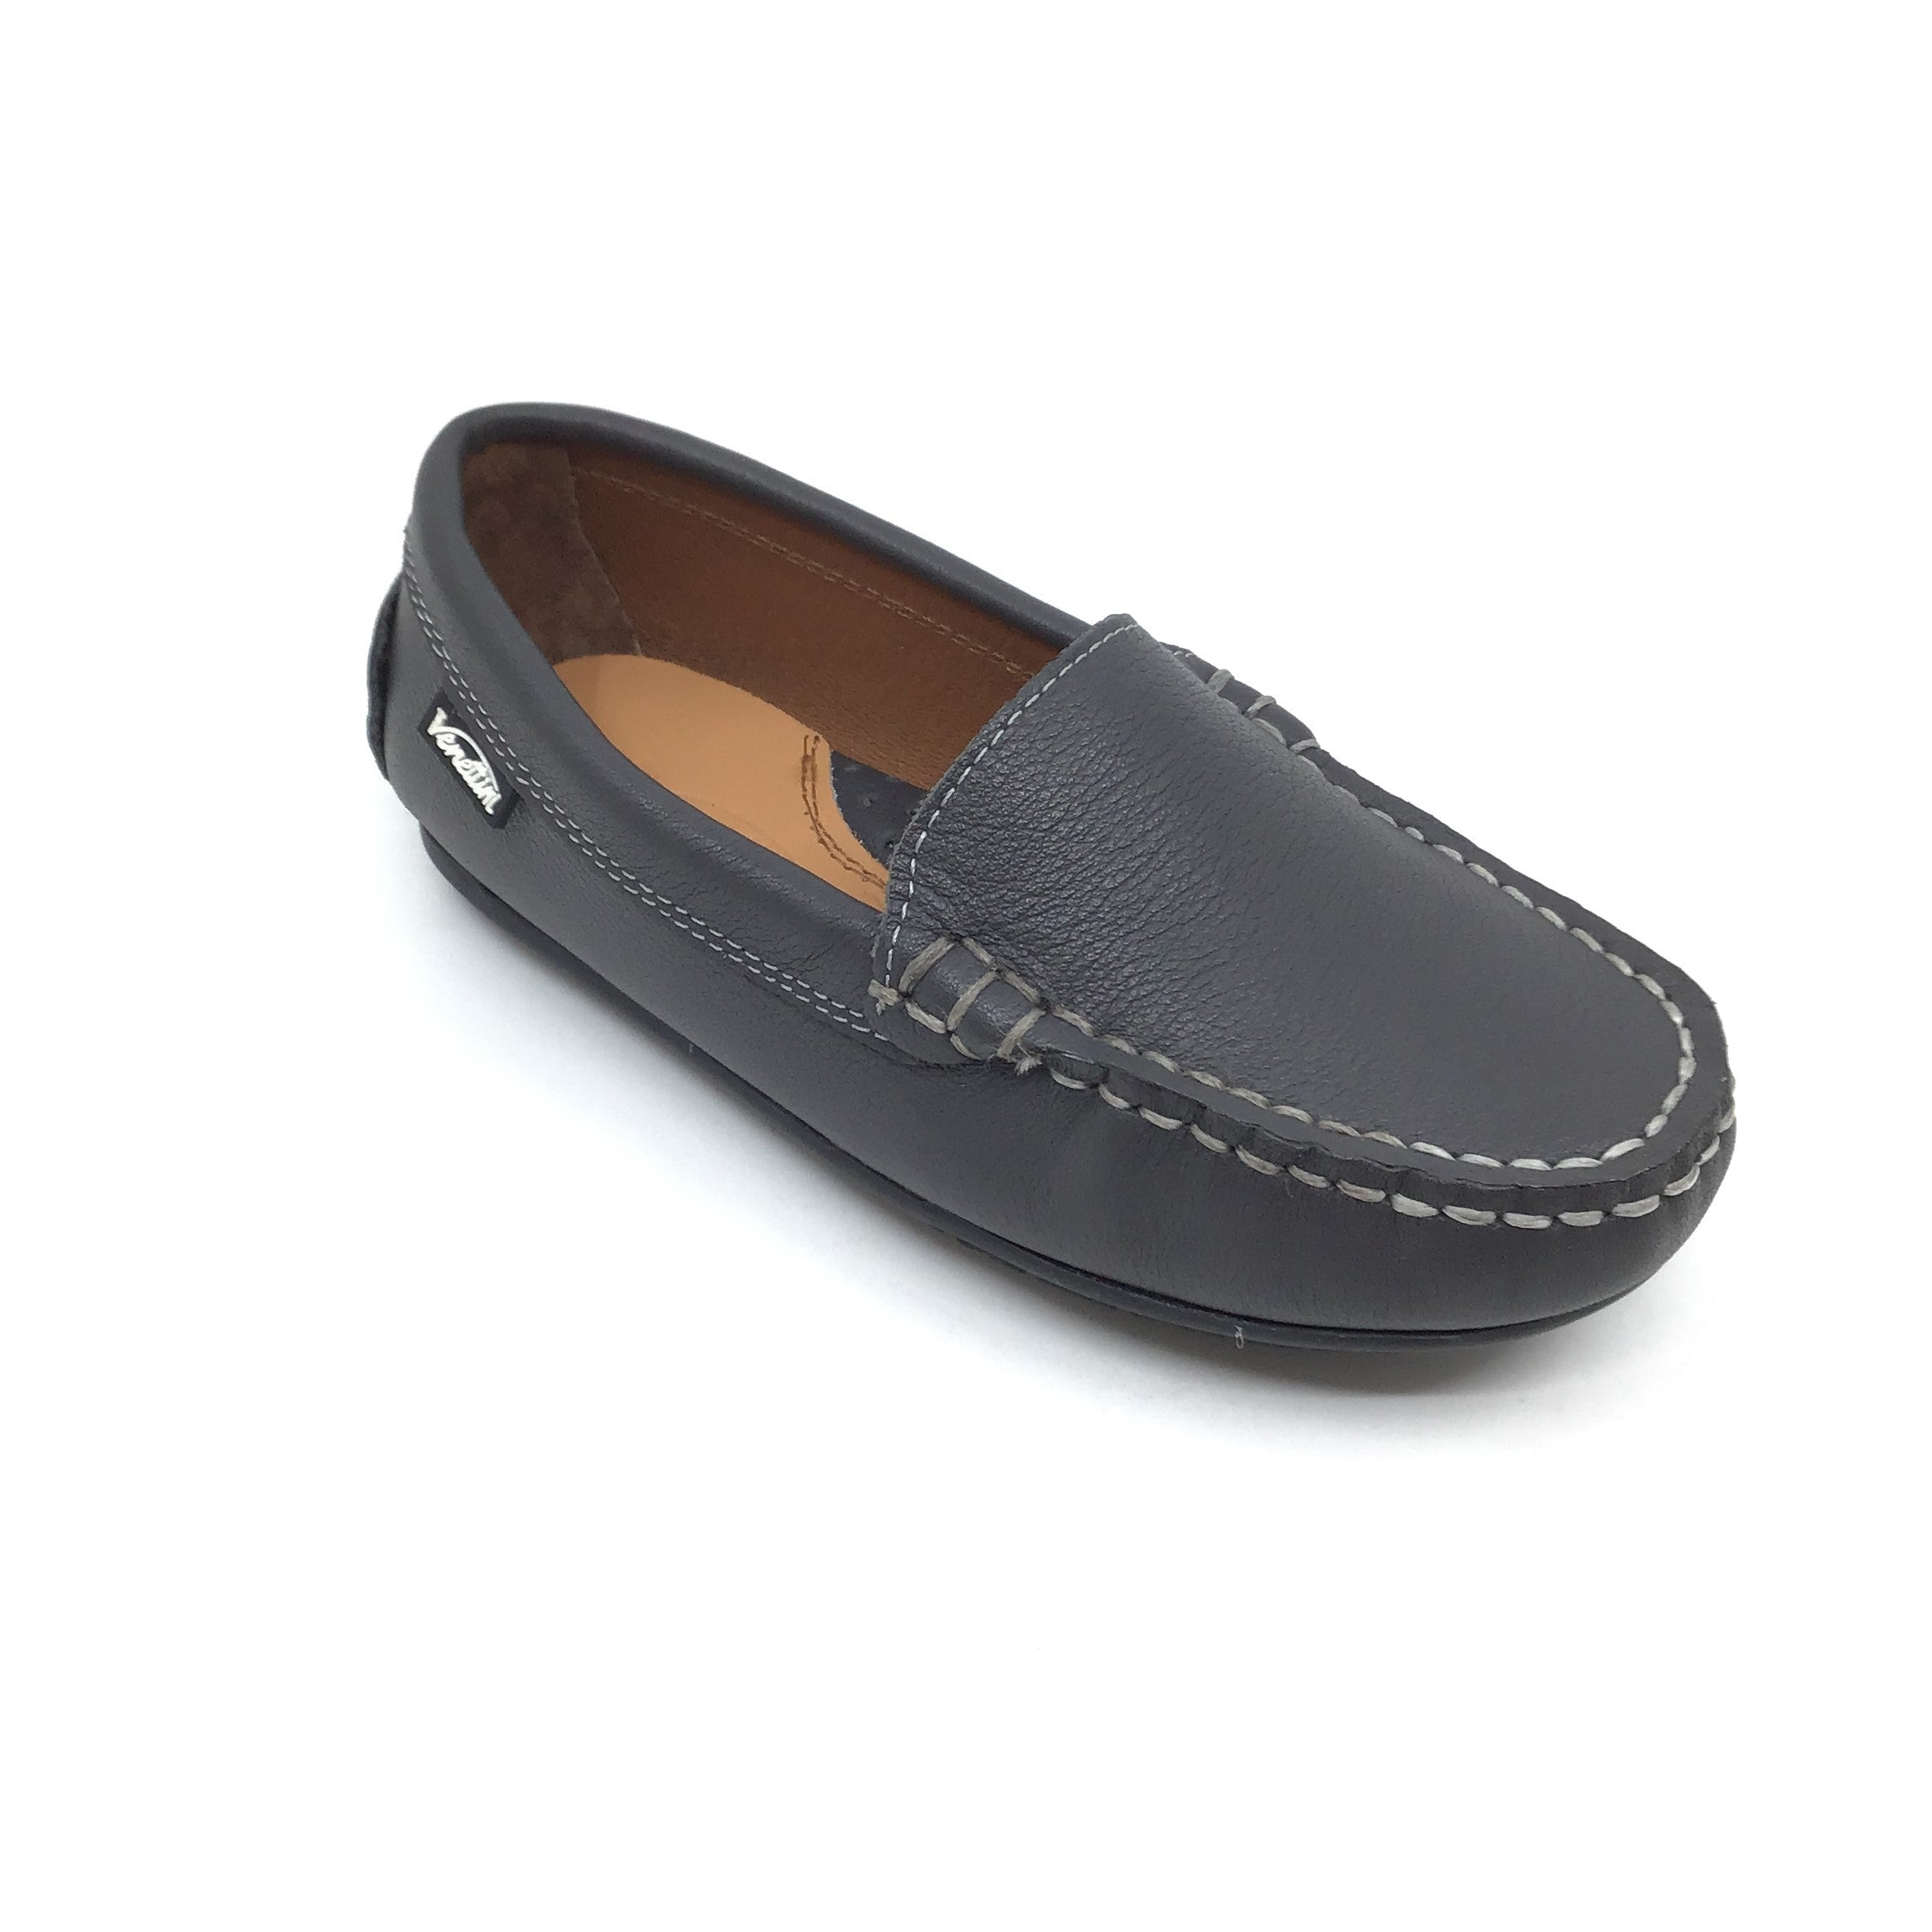 Venettini Gray Moccassin